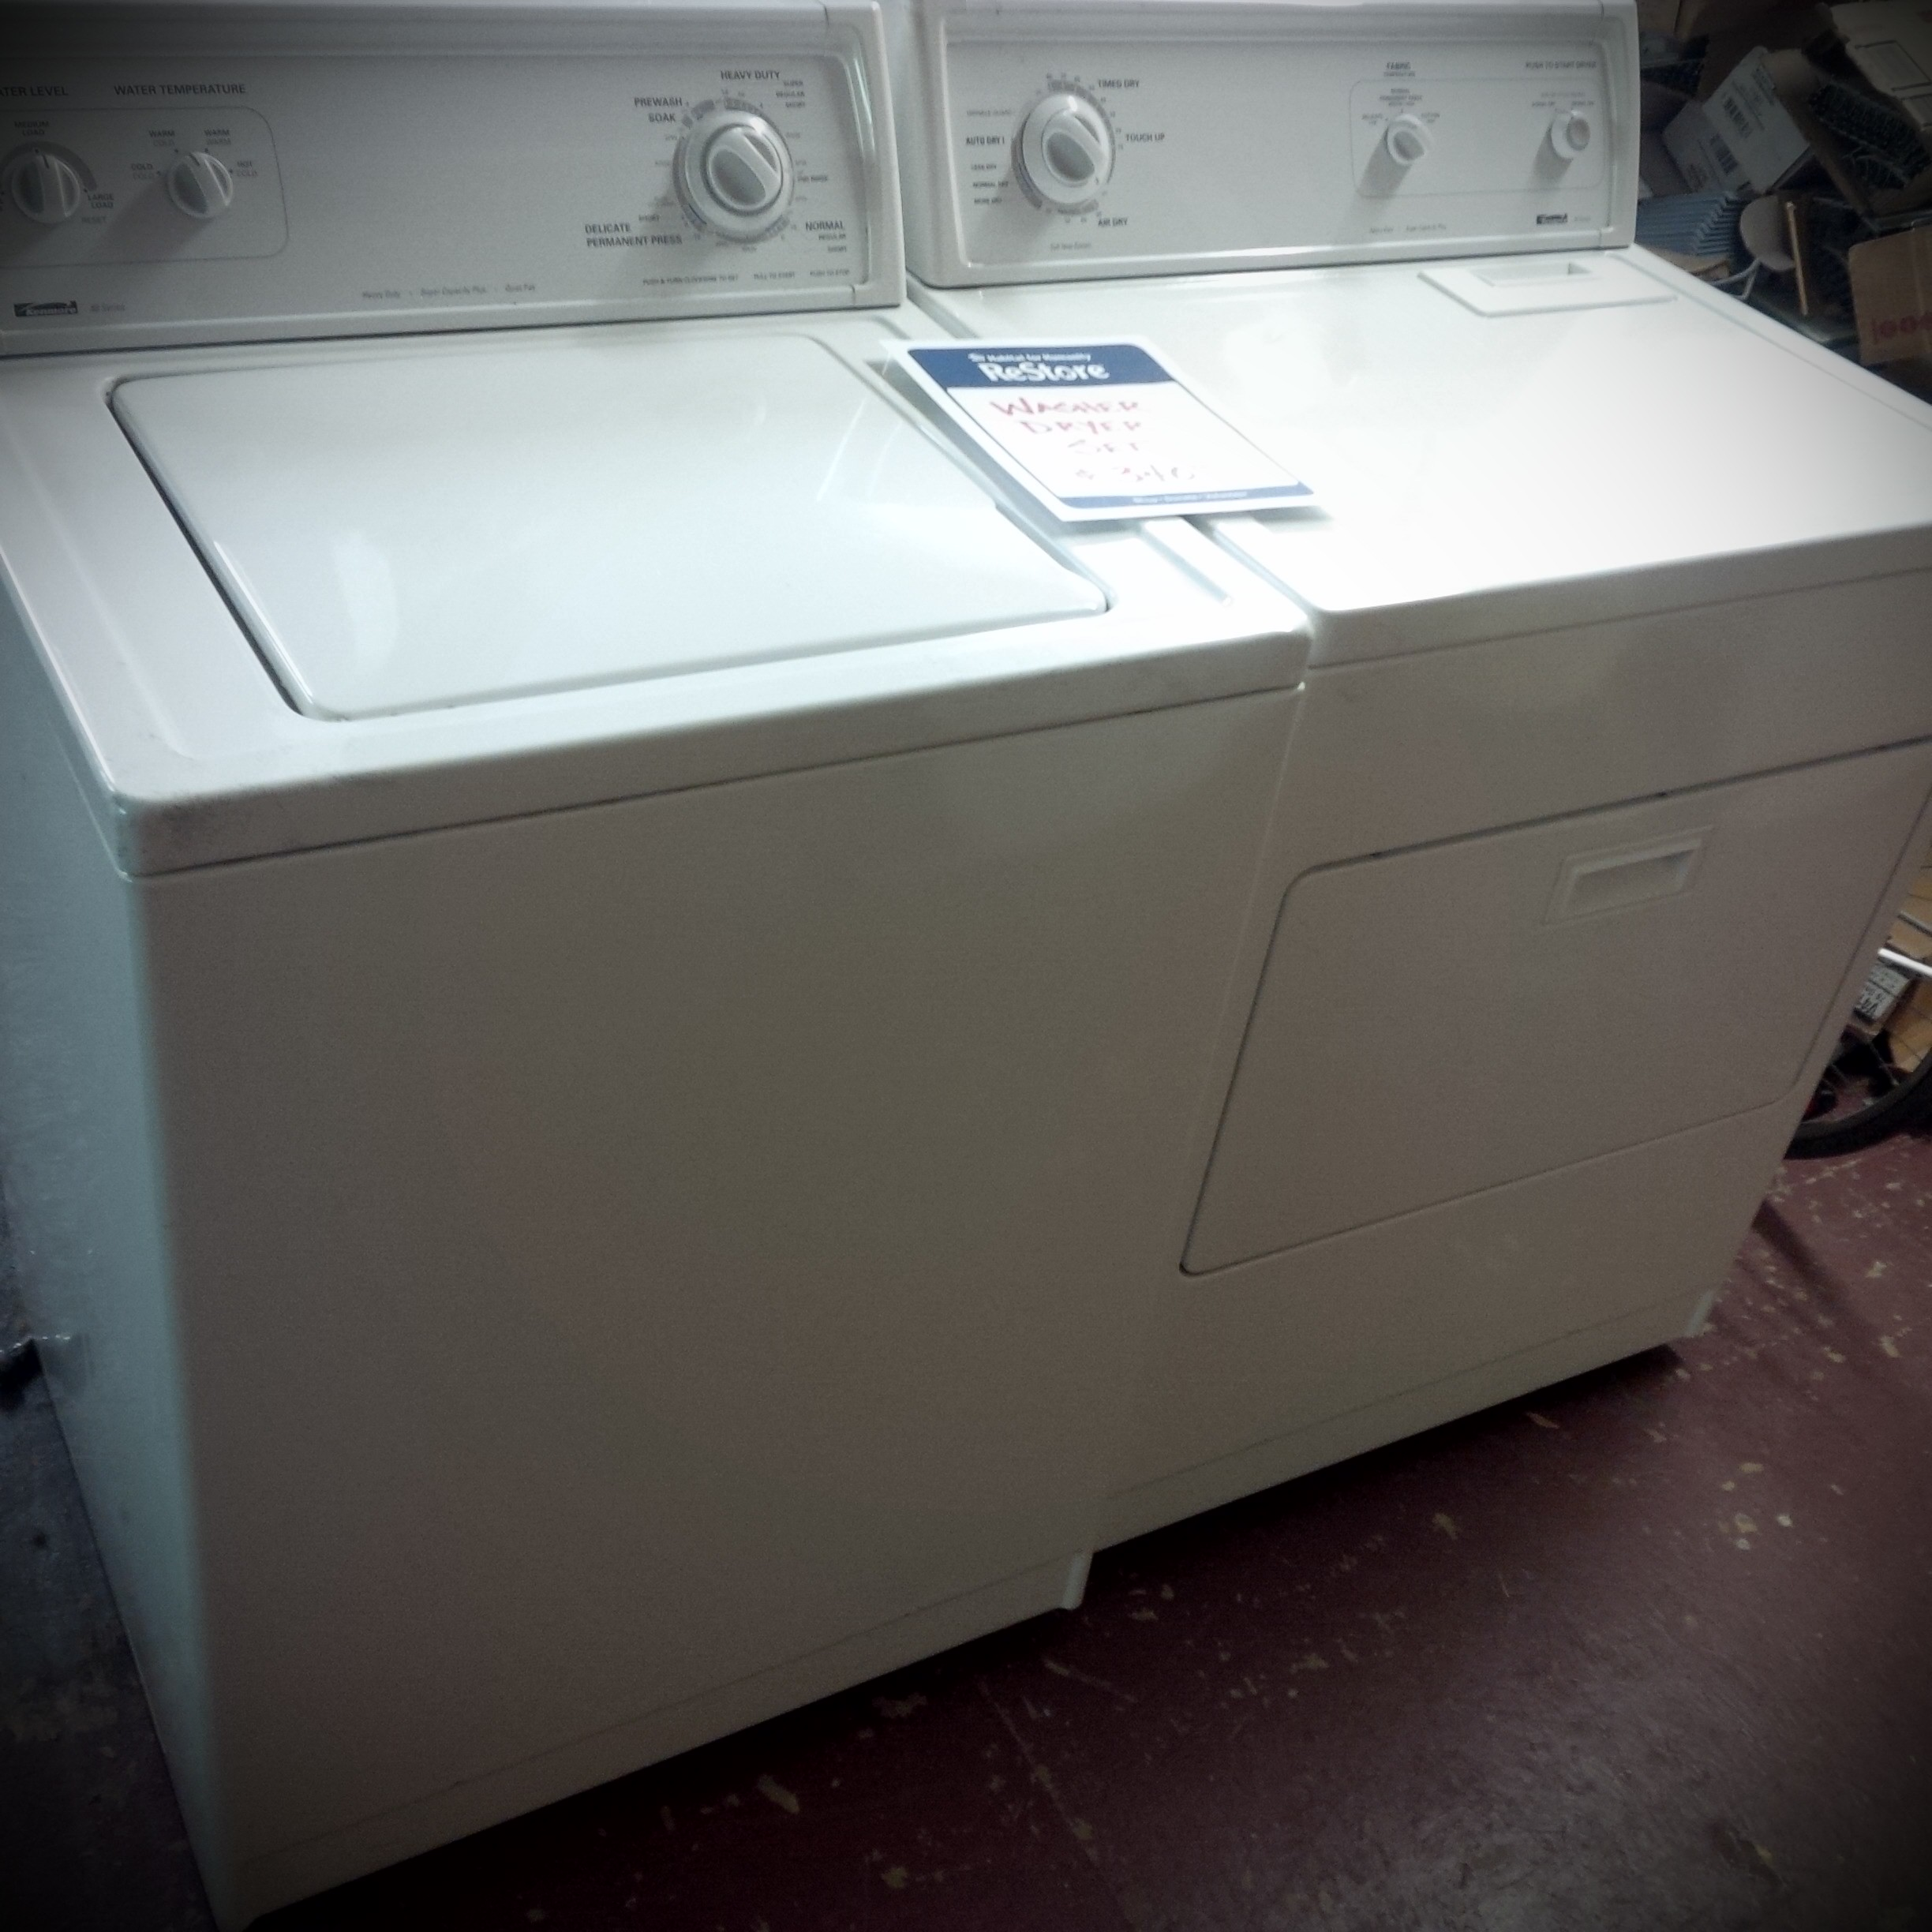 white washing machine and dryer